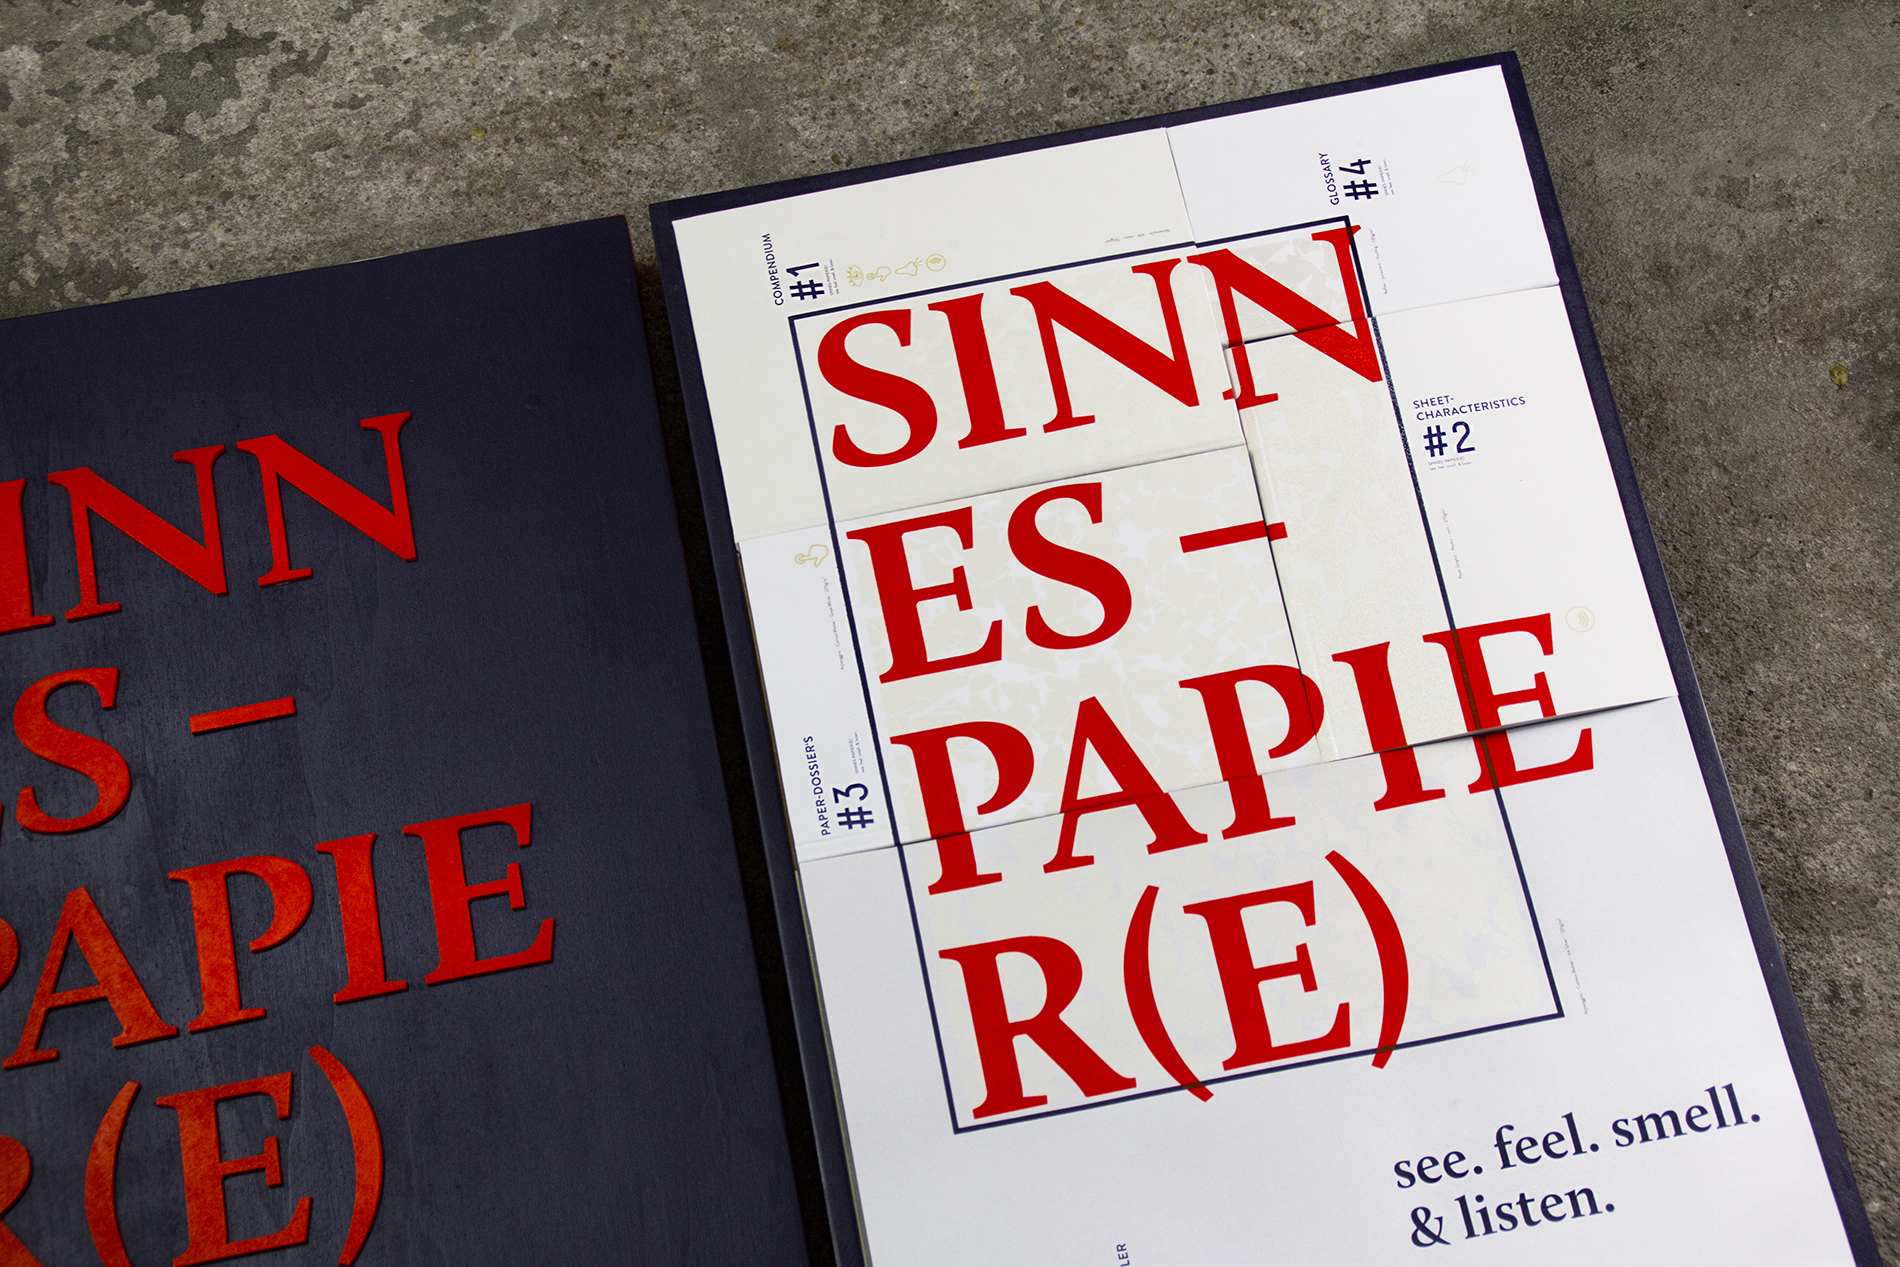 Sinnes-Papier(e) see. feel. smell. & listen.